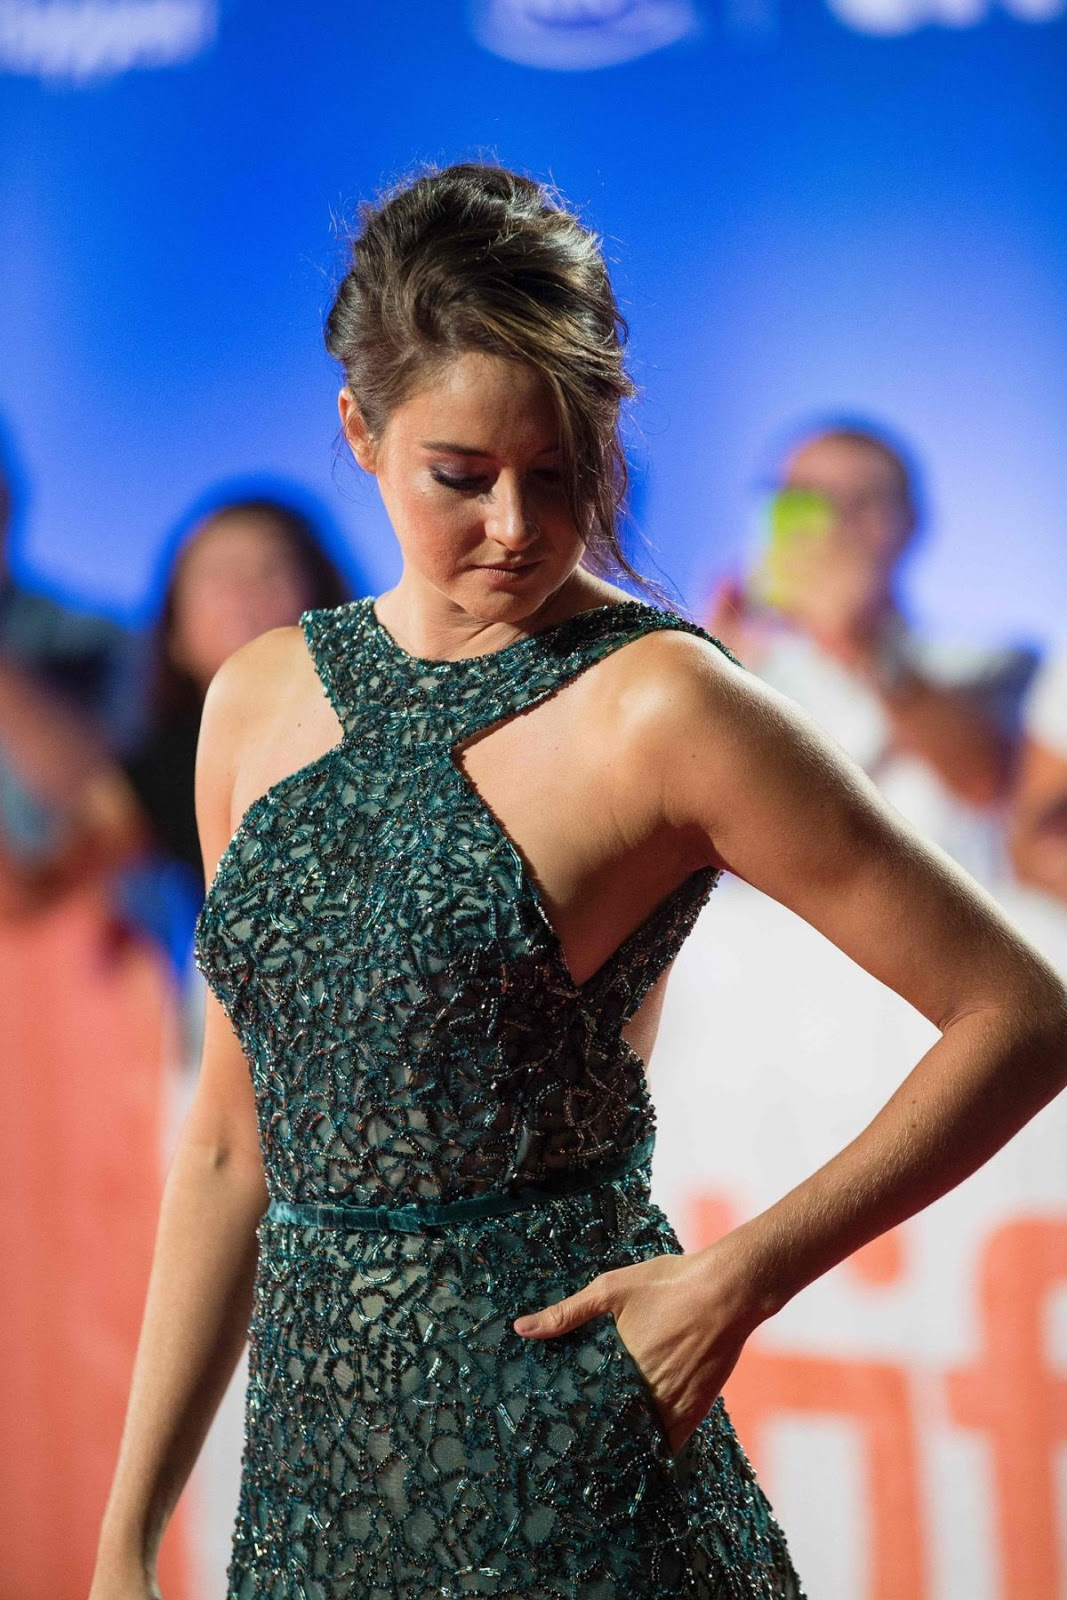 Full HQ Wallpapers of Shailene Woodley At Snowden Premiere At Toronto International Film Festival